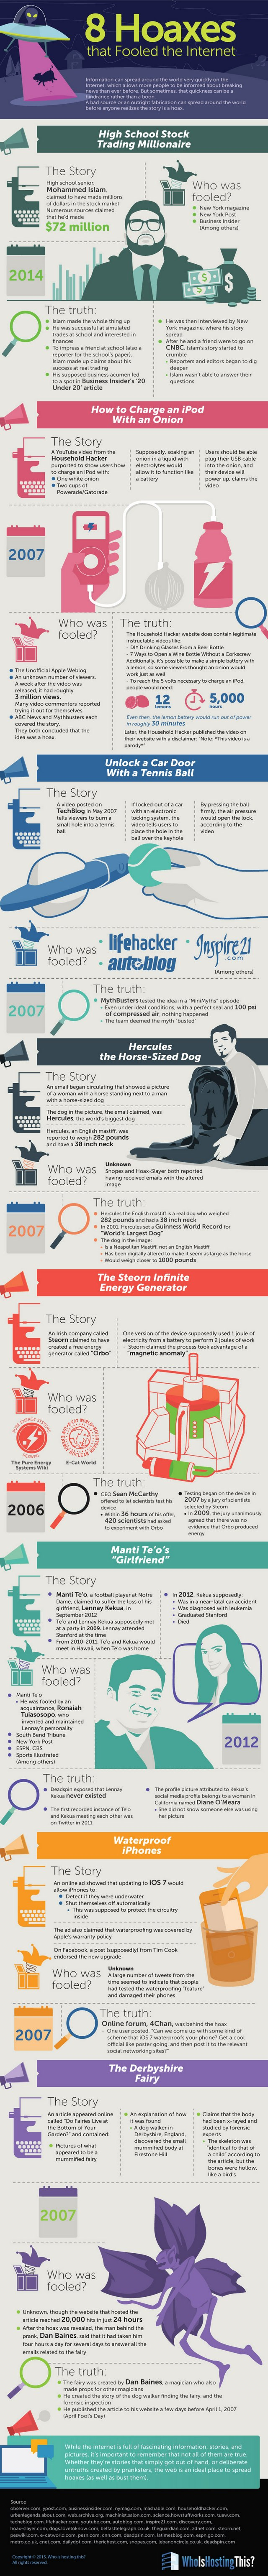 internet-hoaxes-infographic